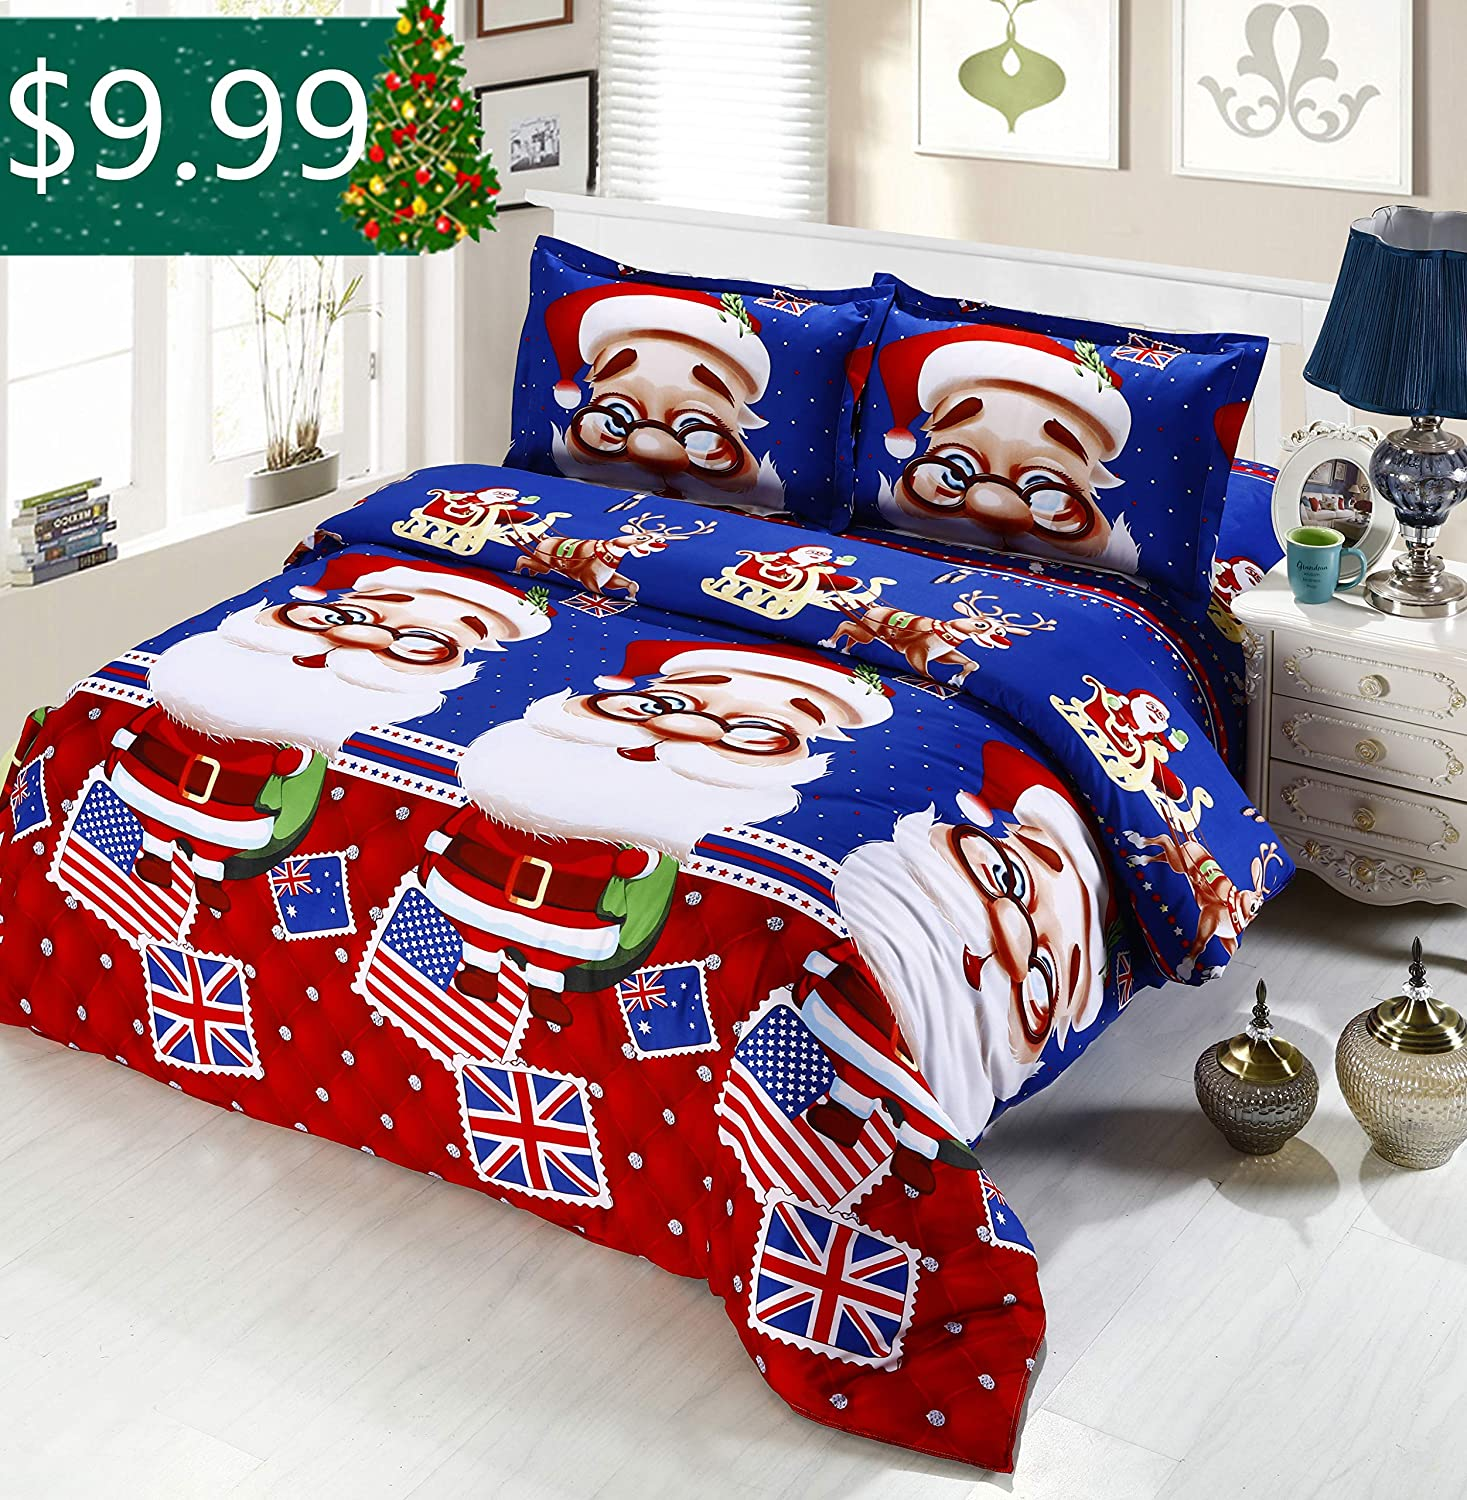 Oliven 4 Pieces 3D Christmas Bedding Set Queen Size Cartoon Santa Claus Duvet Cover Flat Sheet Standard Pillowcases-Blue,Christmas Home Decor